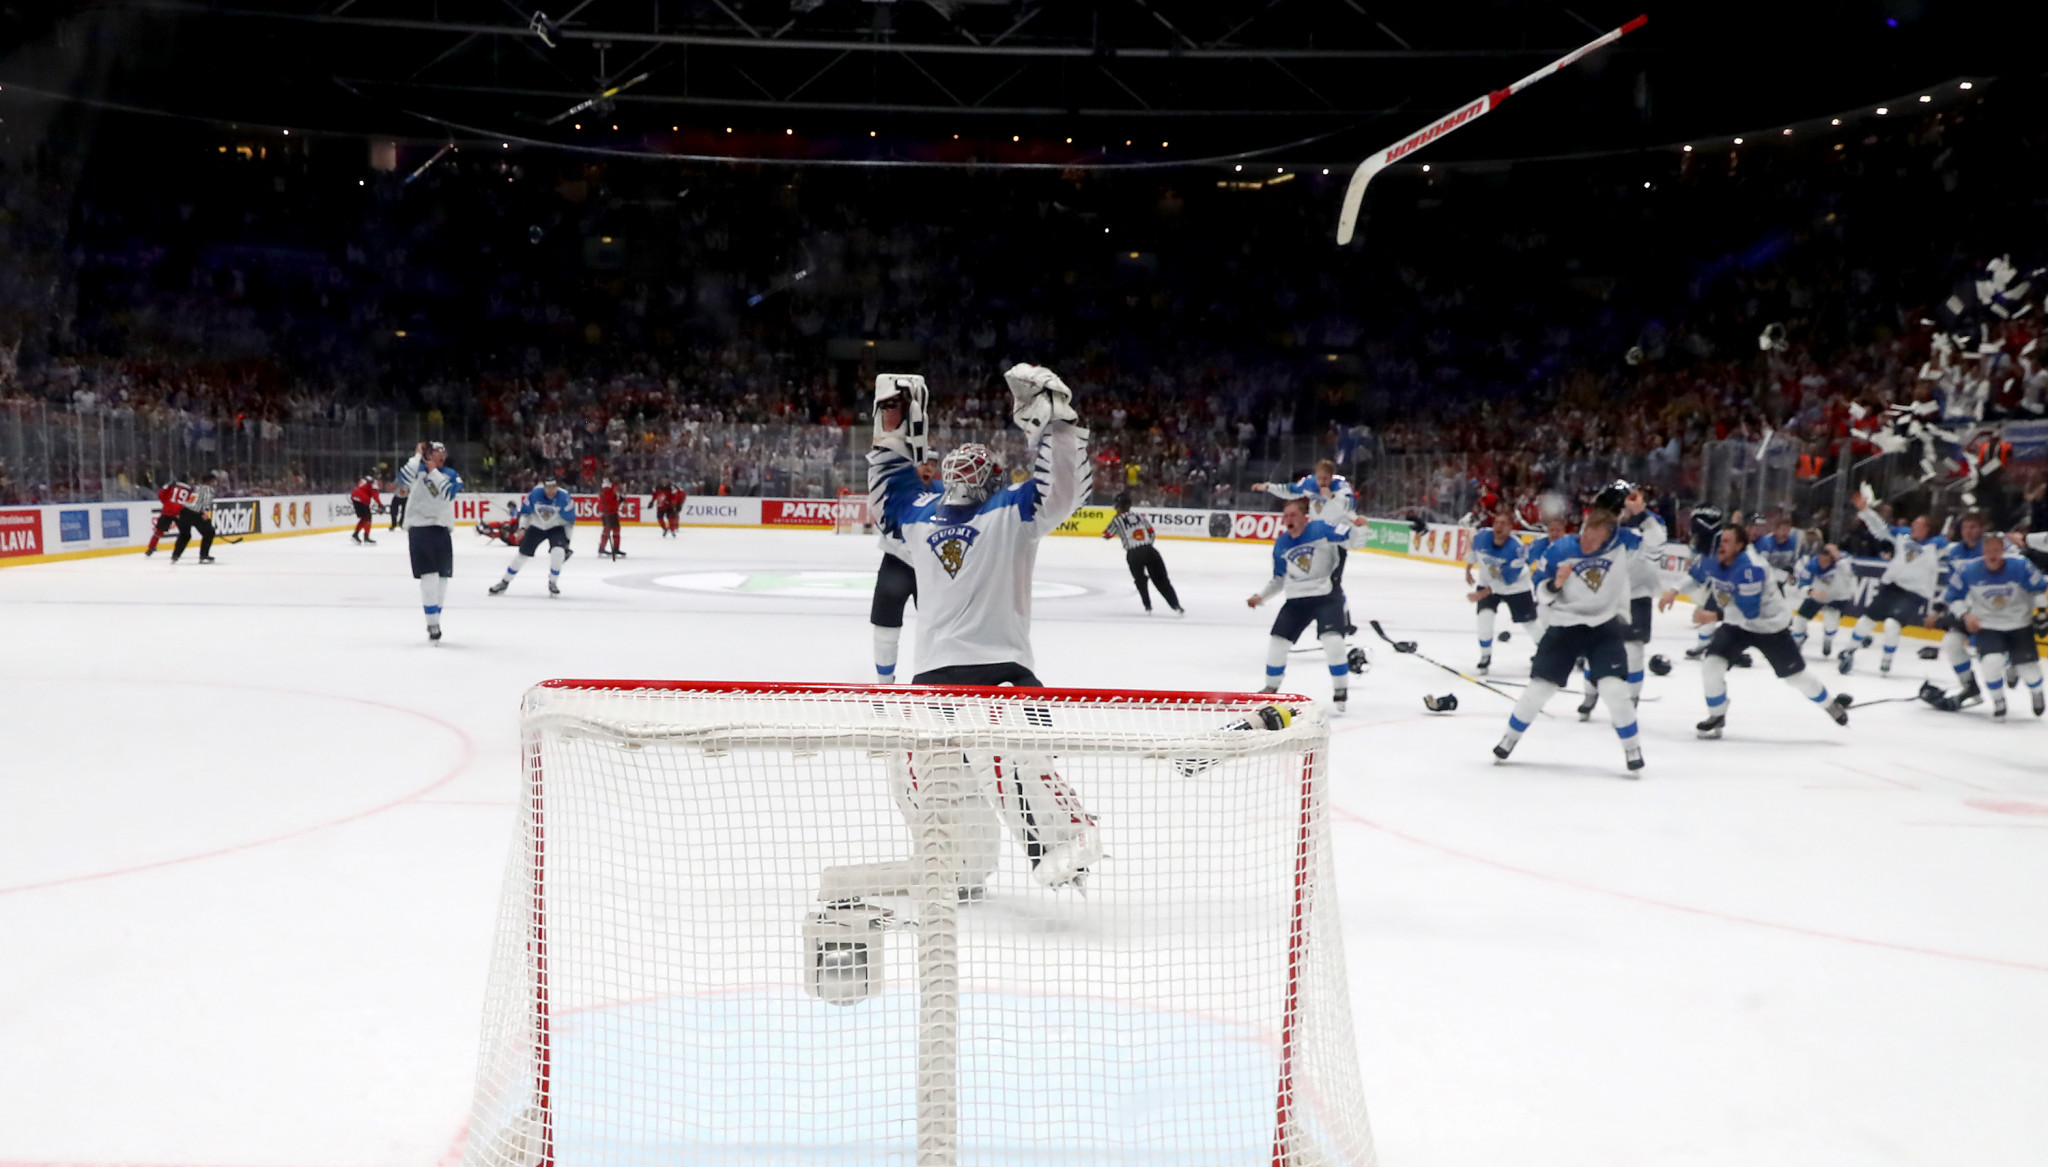 IIHF announce Men's World Championships cancelled over coronavirus